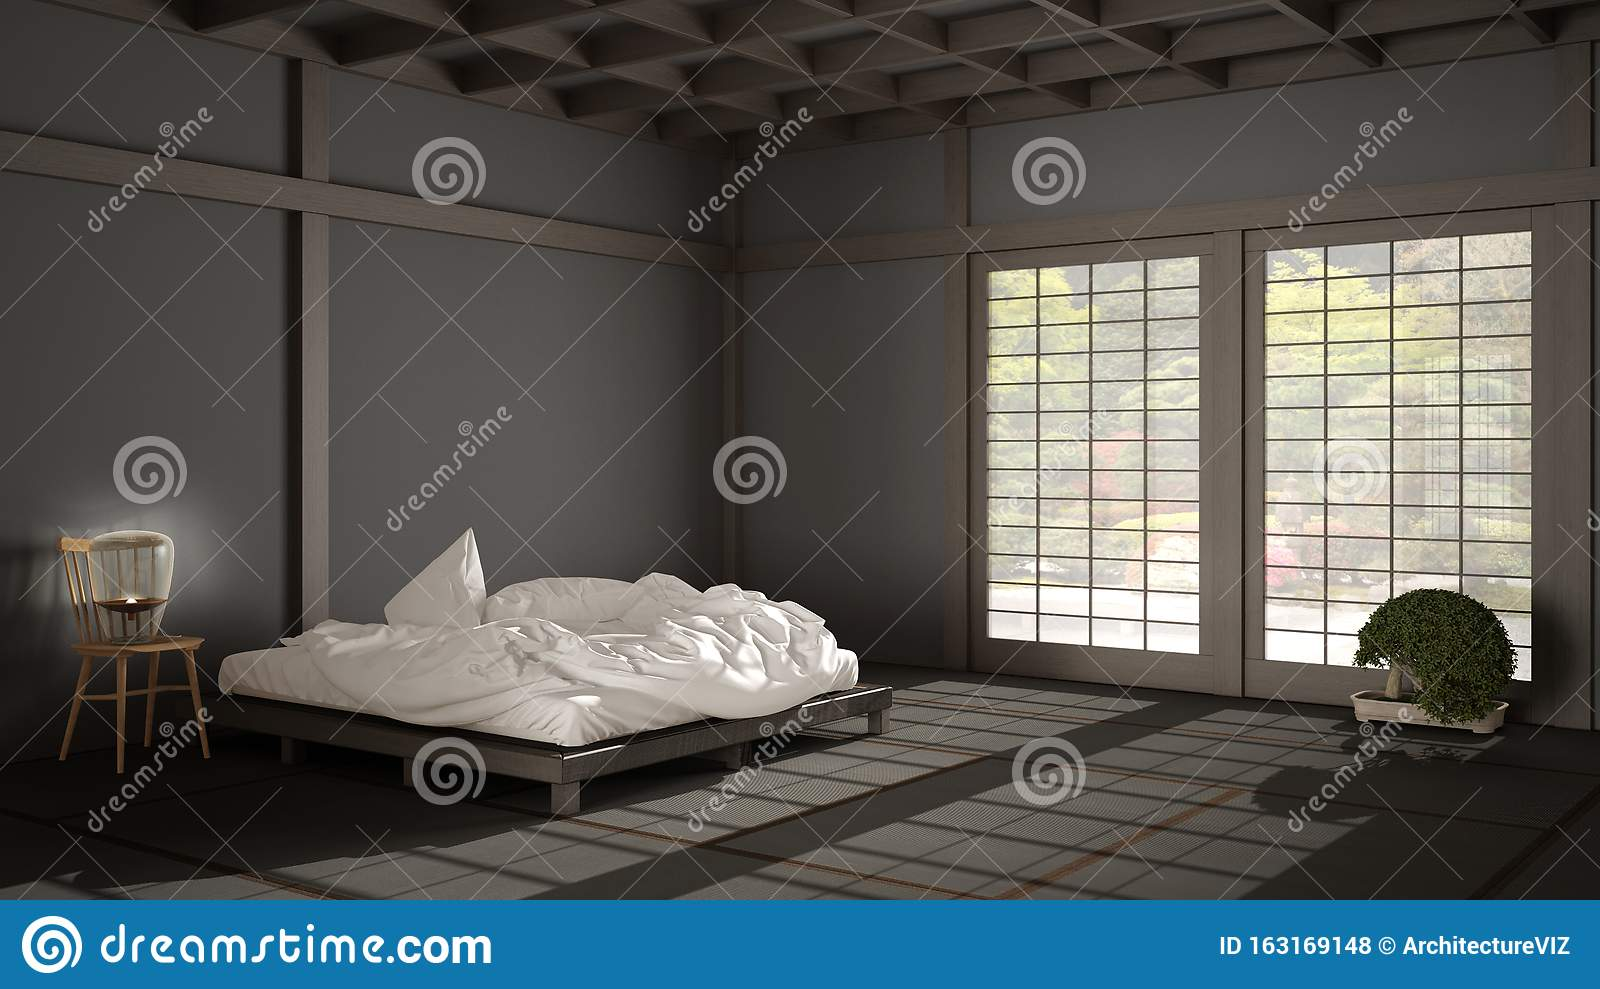 Zen Japanese Empty Minimalist Bedroom Wooden Roof Tatami Floor Futon Double Bed Big Window On Zen Garden Meditative Space Stock Photo Image Of Meditation Bedding 163169148